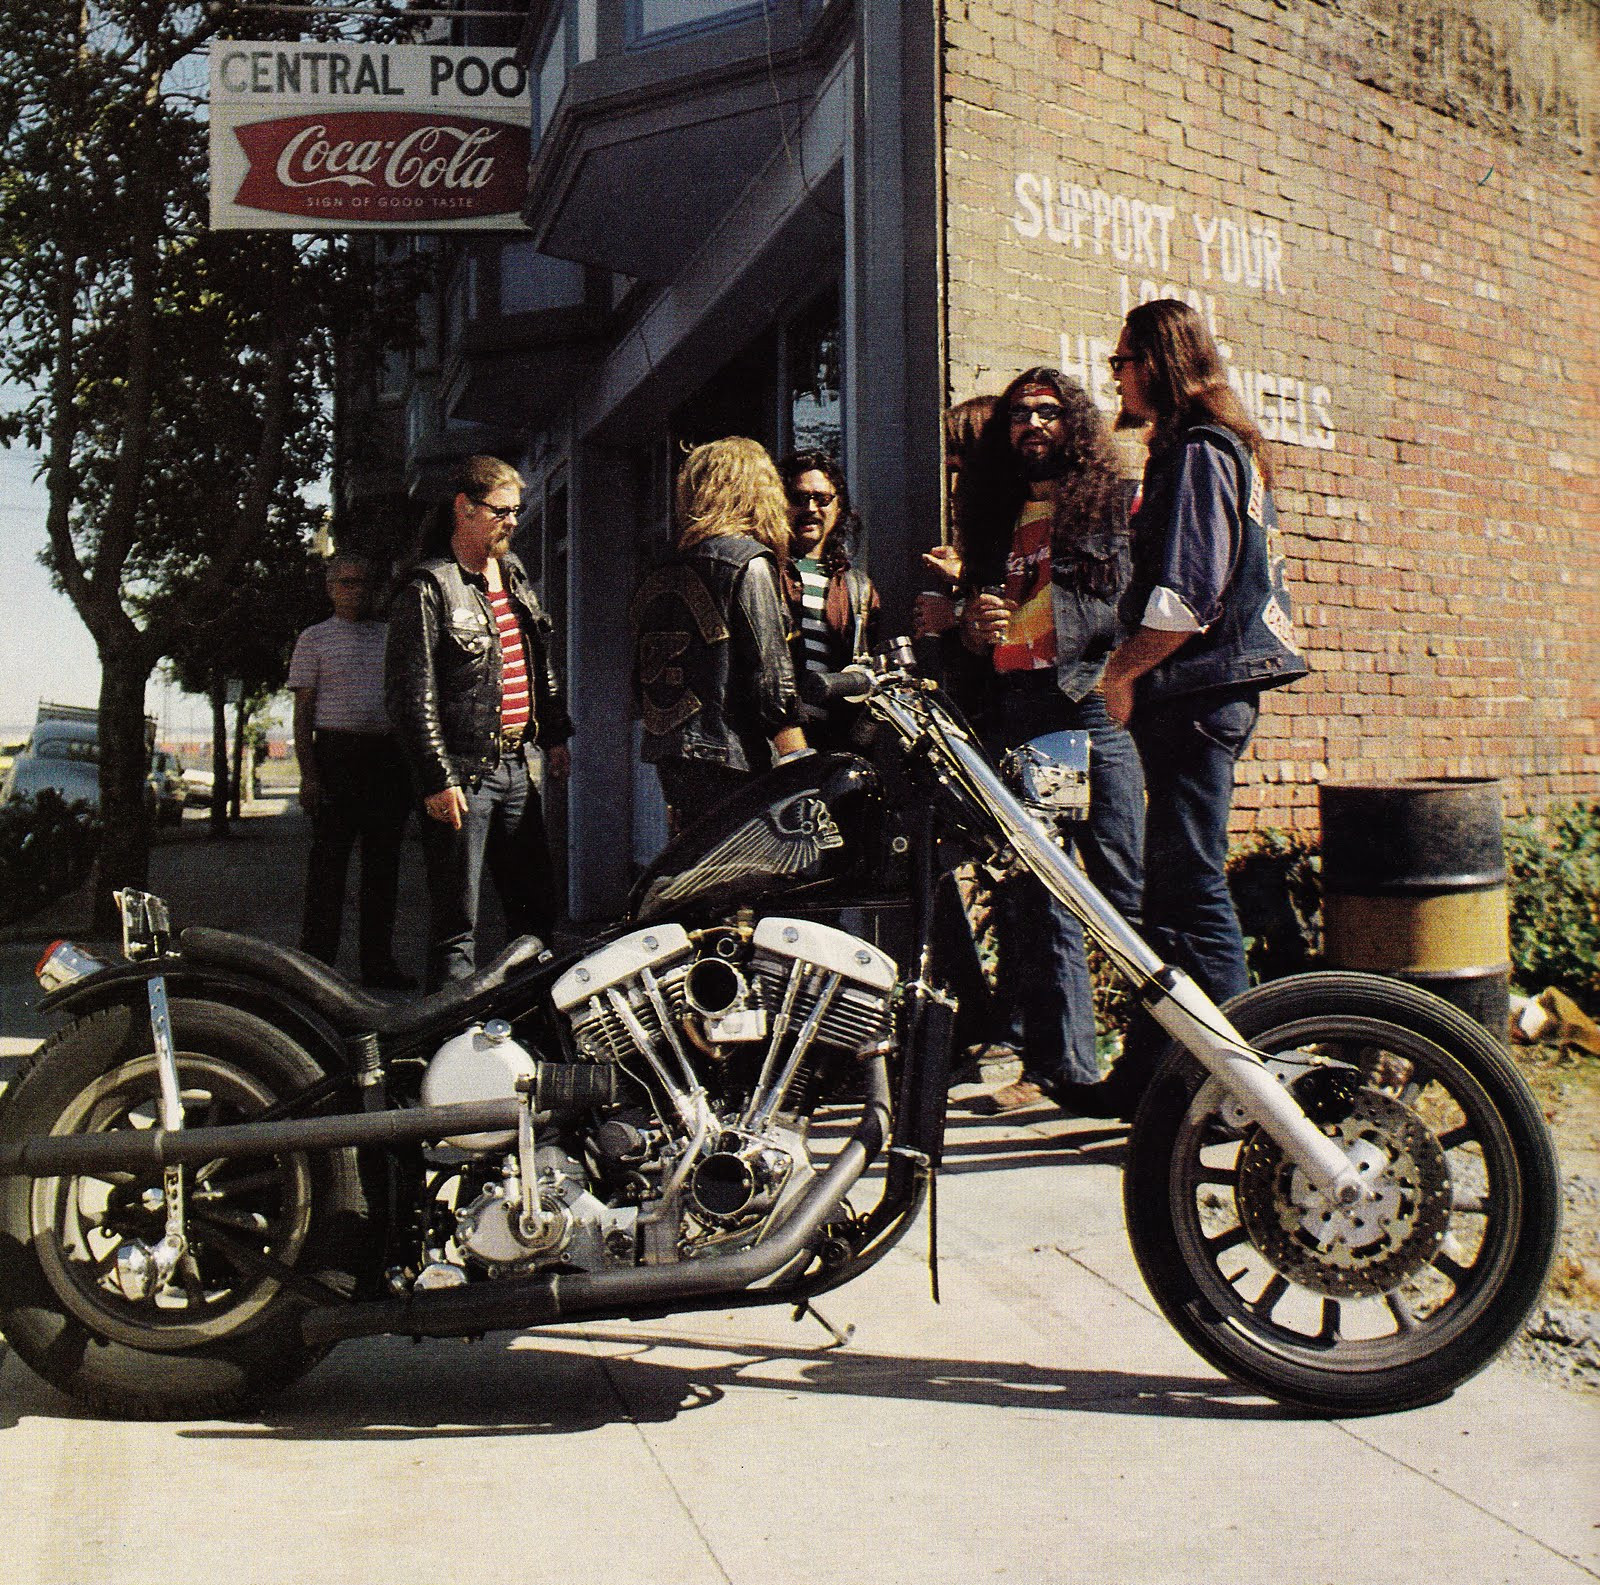 Henry Davidson Bike >> Support Your Local Hell's Angels